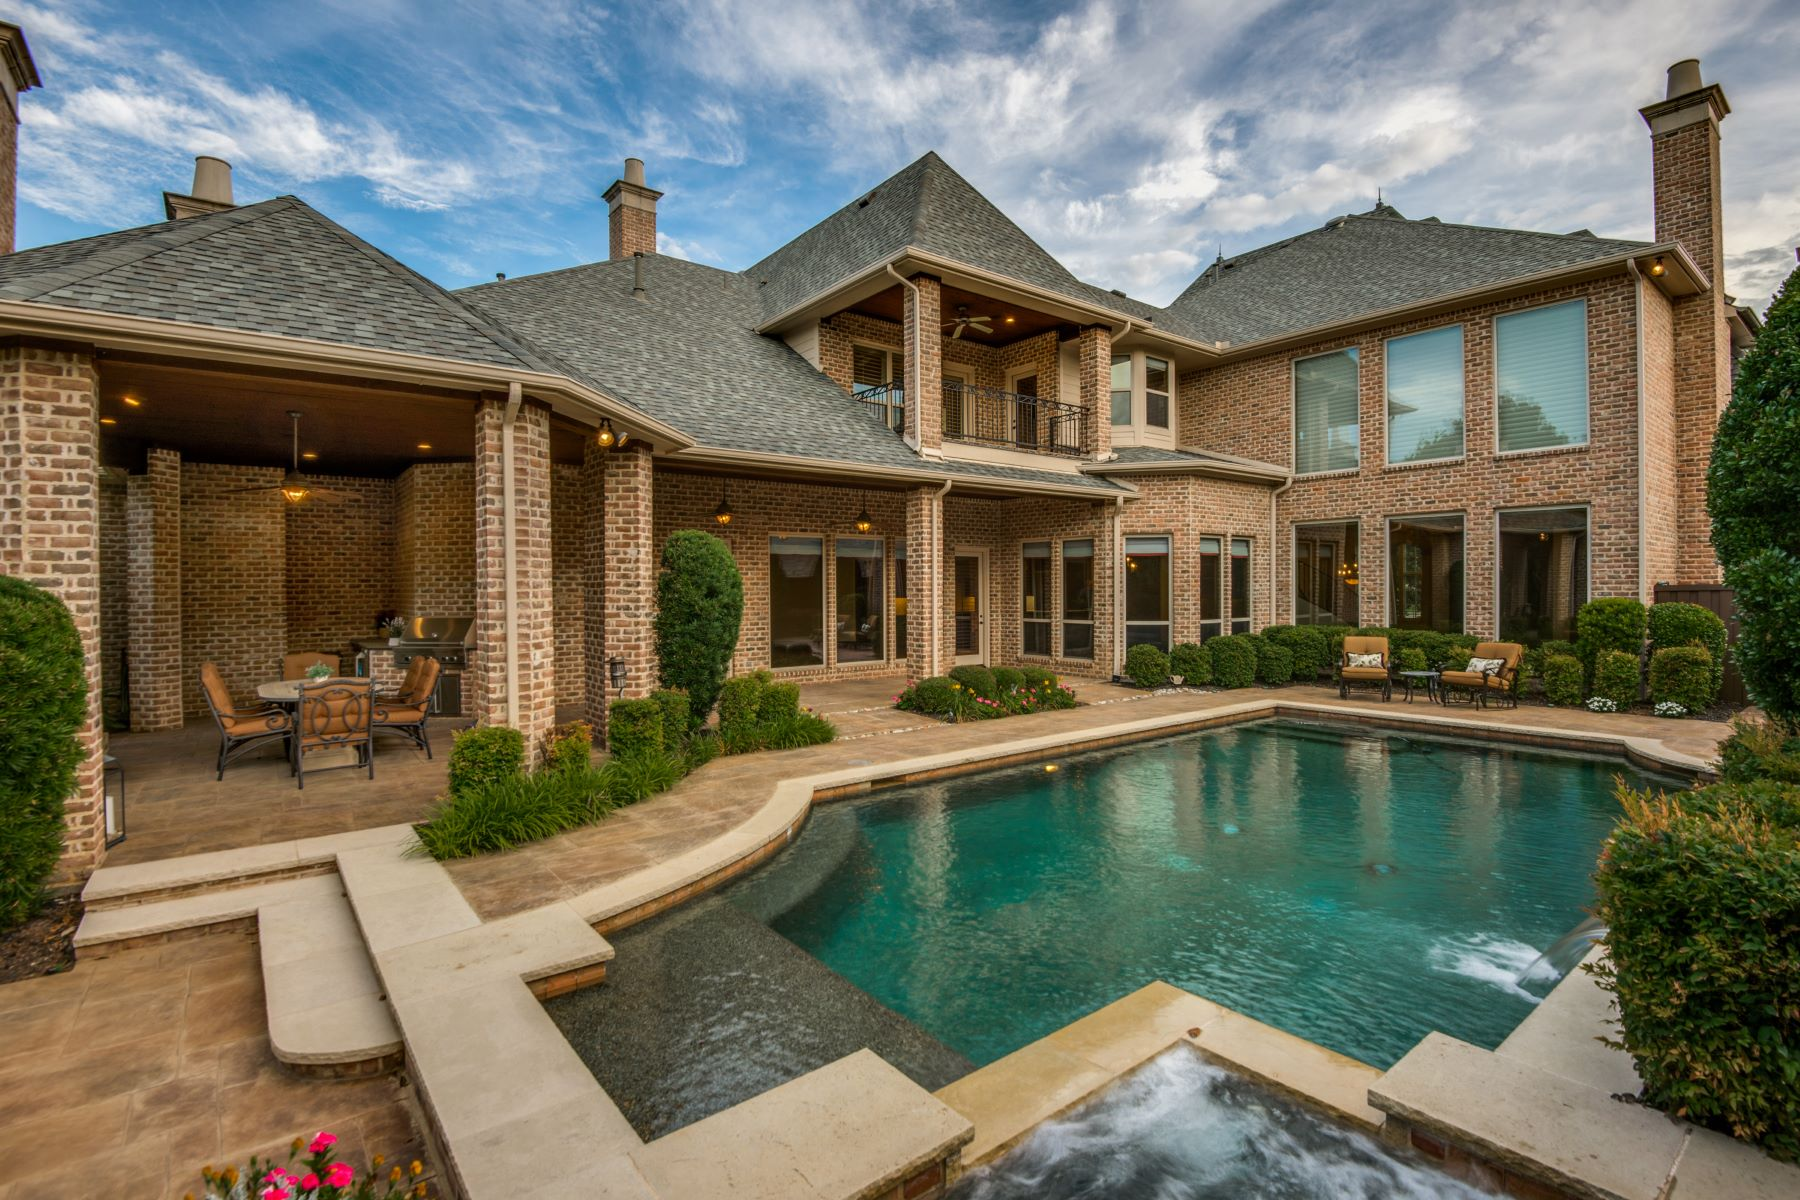 Single Family Homes for Active at Classic and Distinctive! 6422 Memorial Drive Frisco, Texas 75034 United States